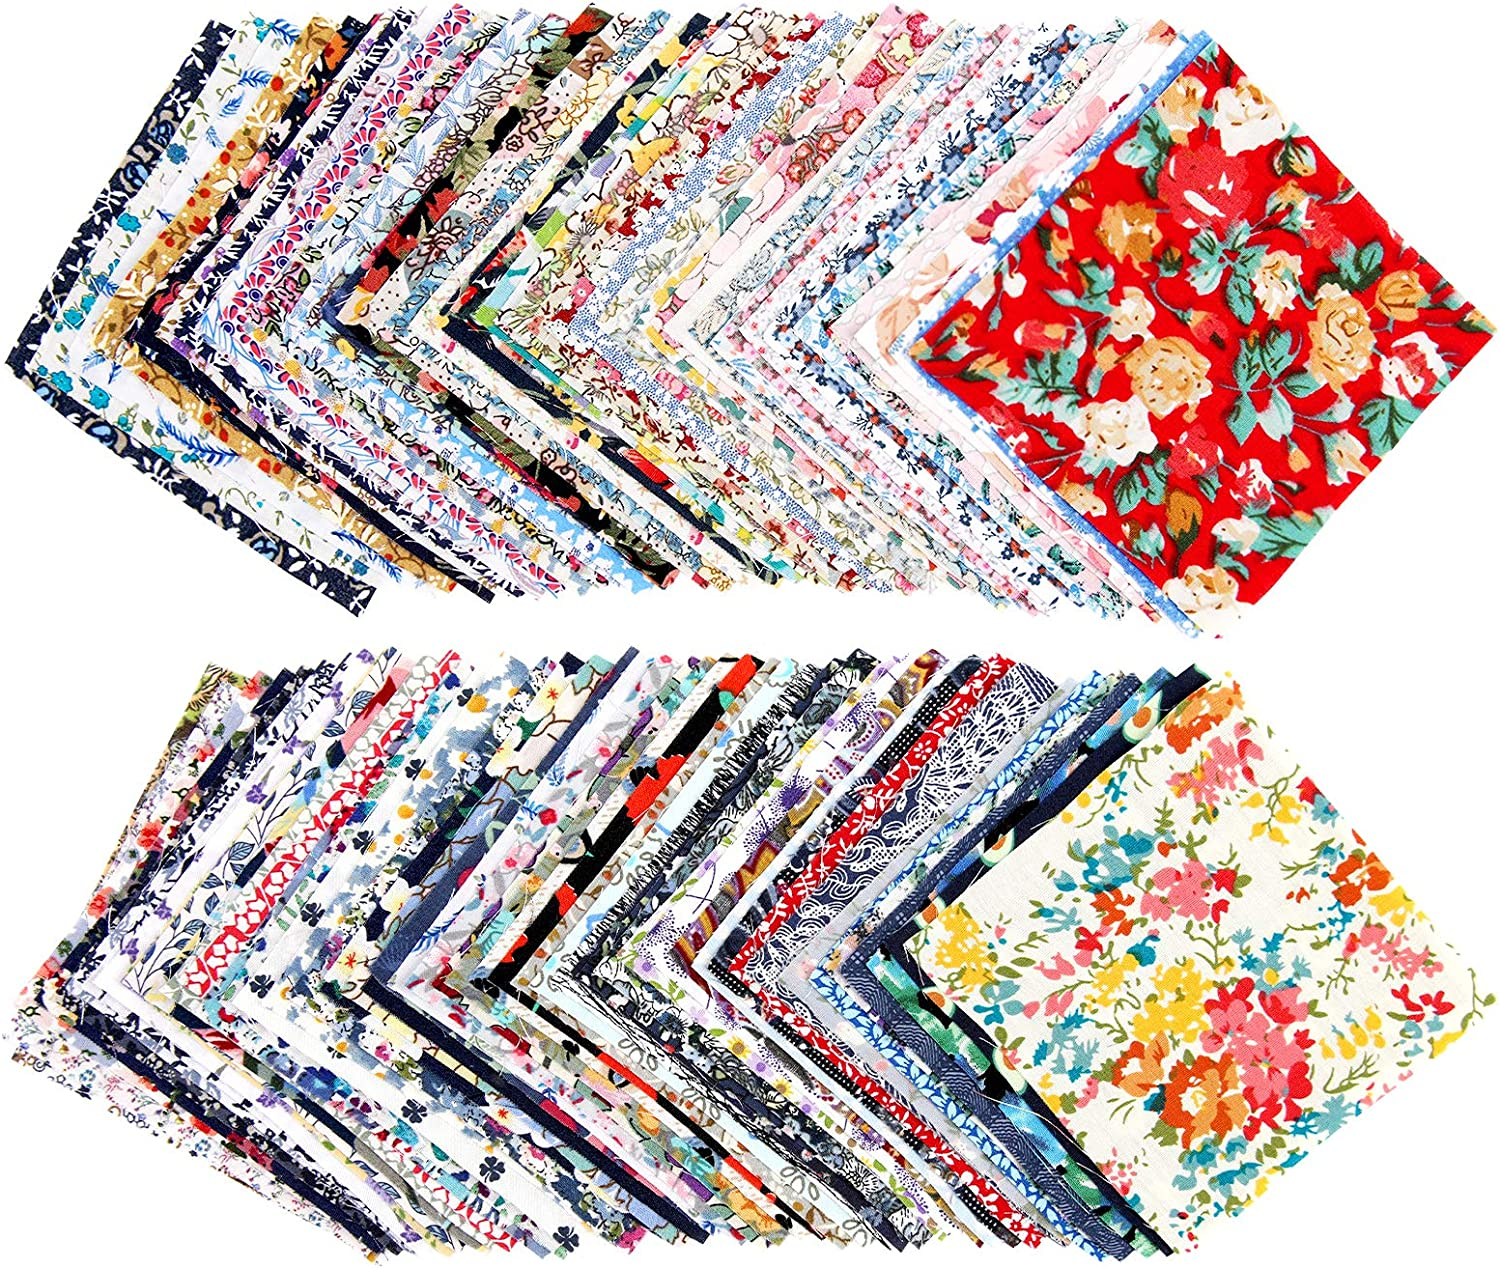 100 Pieces Patchwork Printed Floral Assorted Color Cotton Craft Fabric Bundle Squares Precut Fabric Sheets Patchwork Fabric Sets for DIY Sewing Scrapbooking Quilting (3.9 x 3.9 Inch/10 x 10 cm)